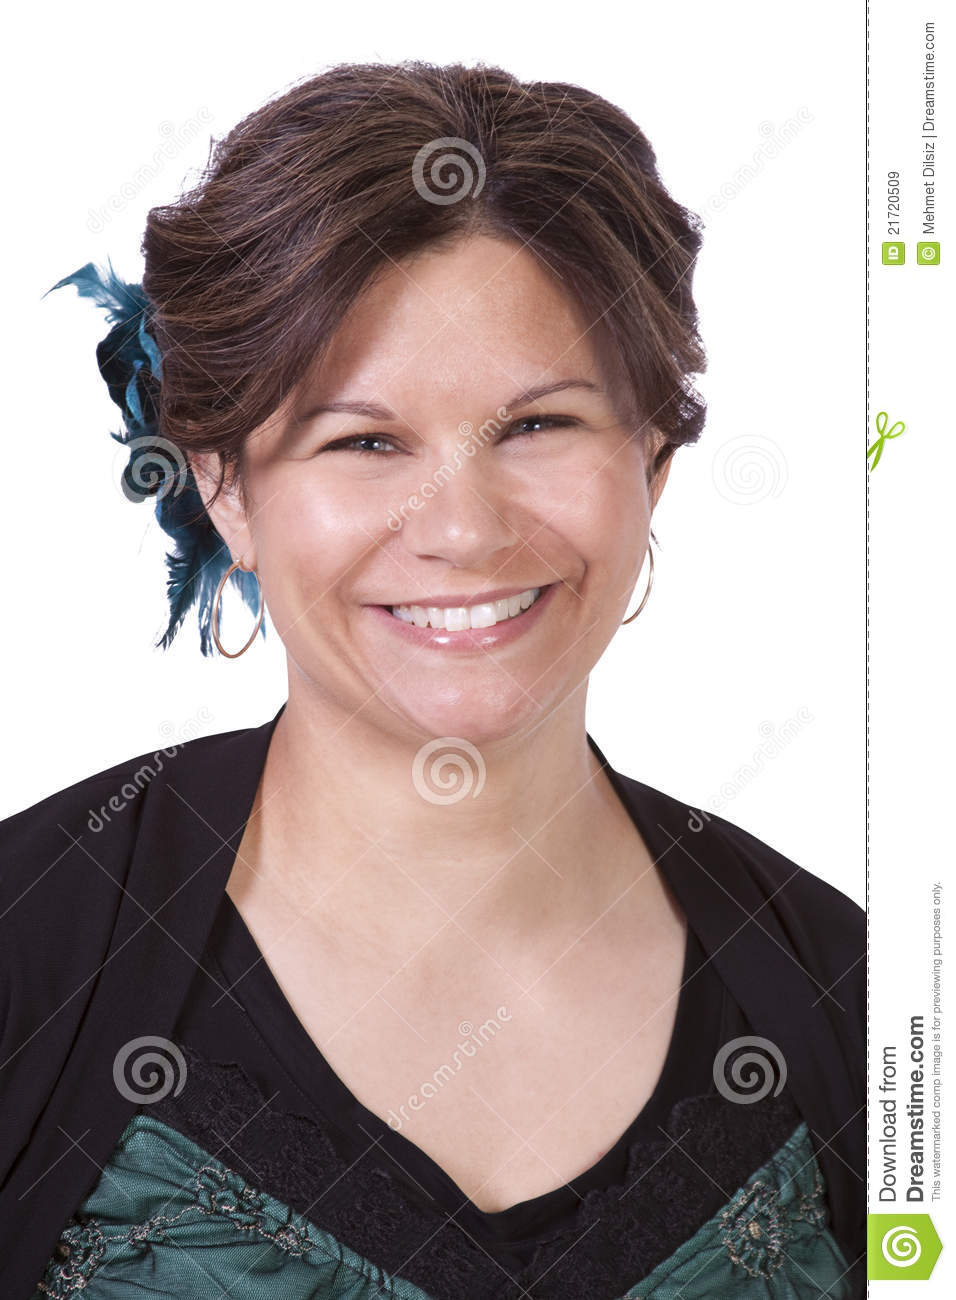 Royalty Free Stock Images: Cute Hispanic Woman With Her